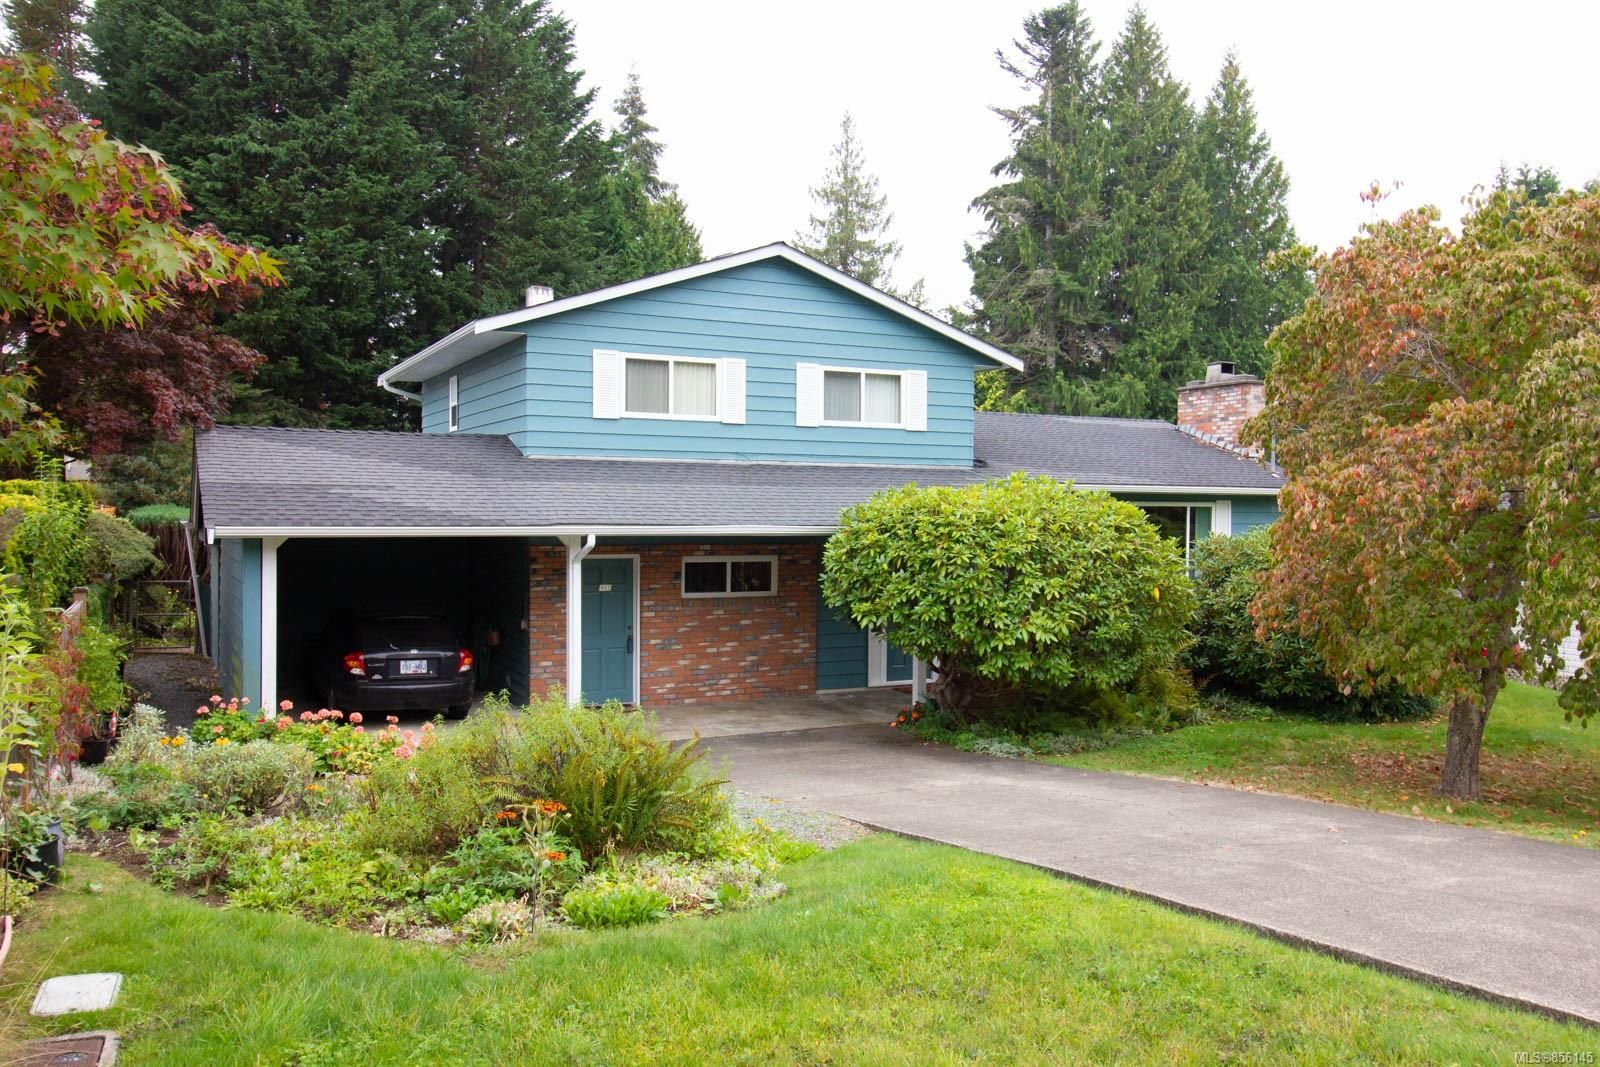 Main Photo: 452 Dogwood Rd in : PQ Qualicum Beach House for sale (Parksville/Qualicum)  : MLS®# 856145